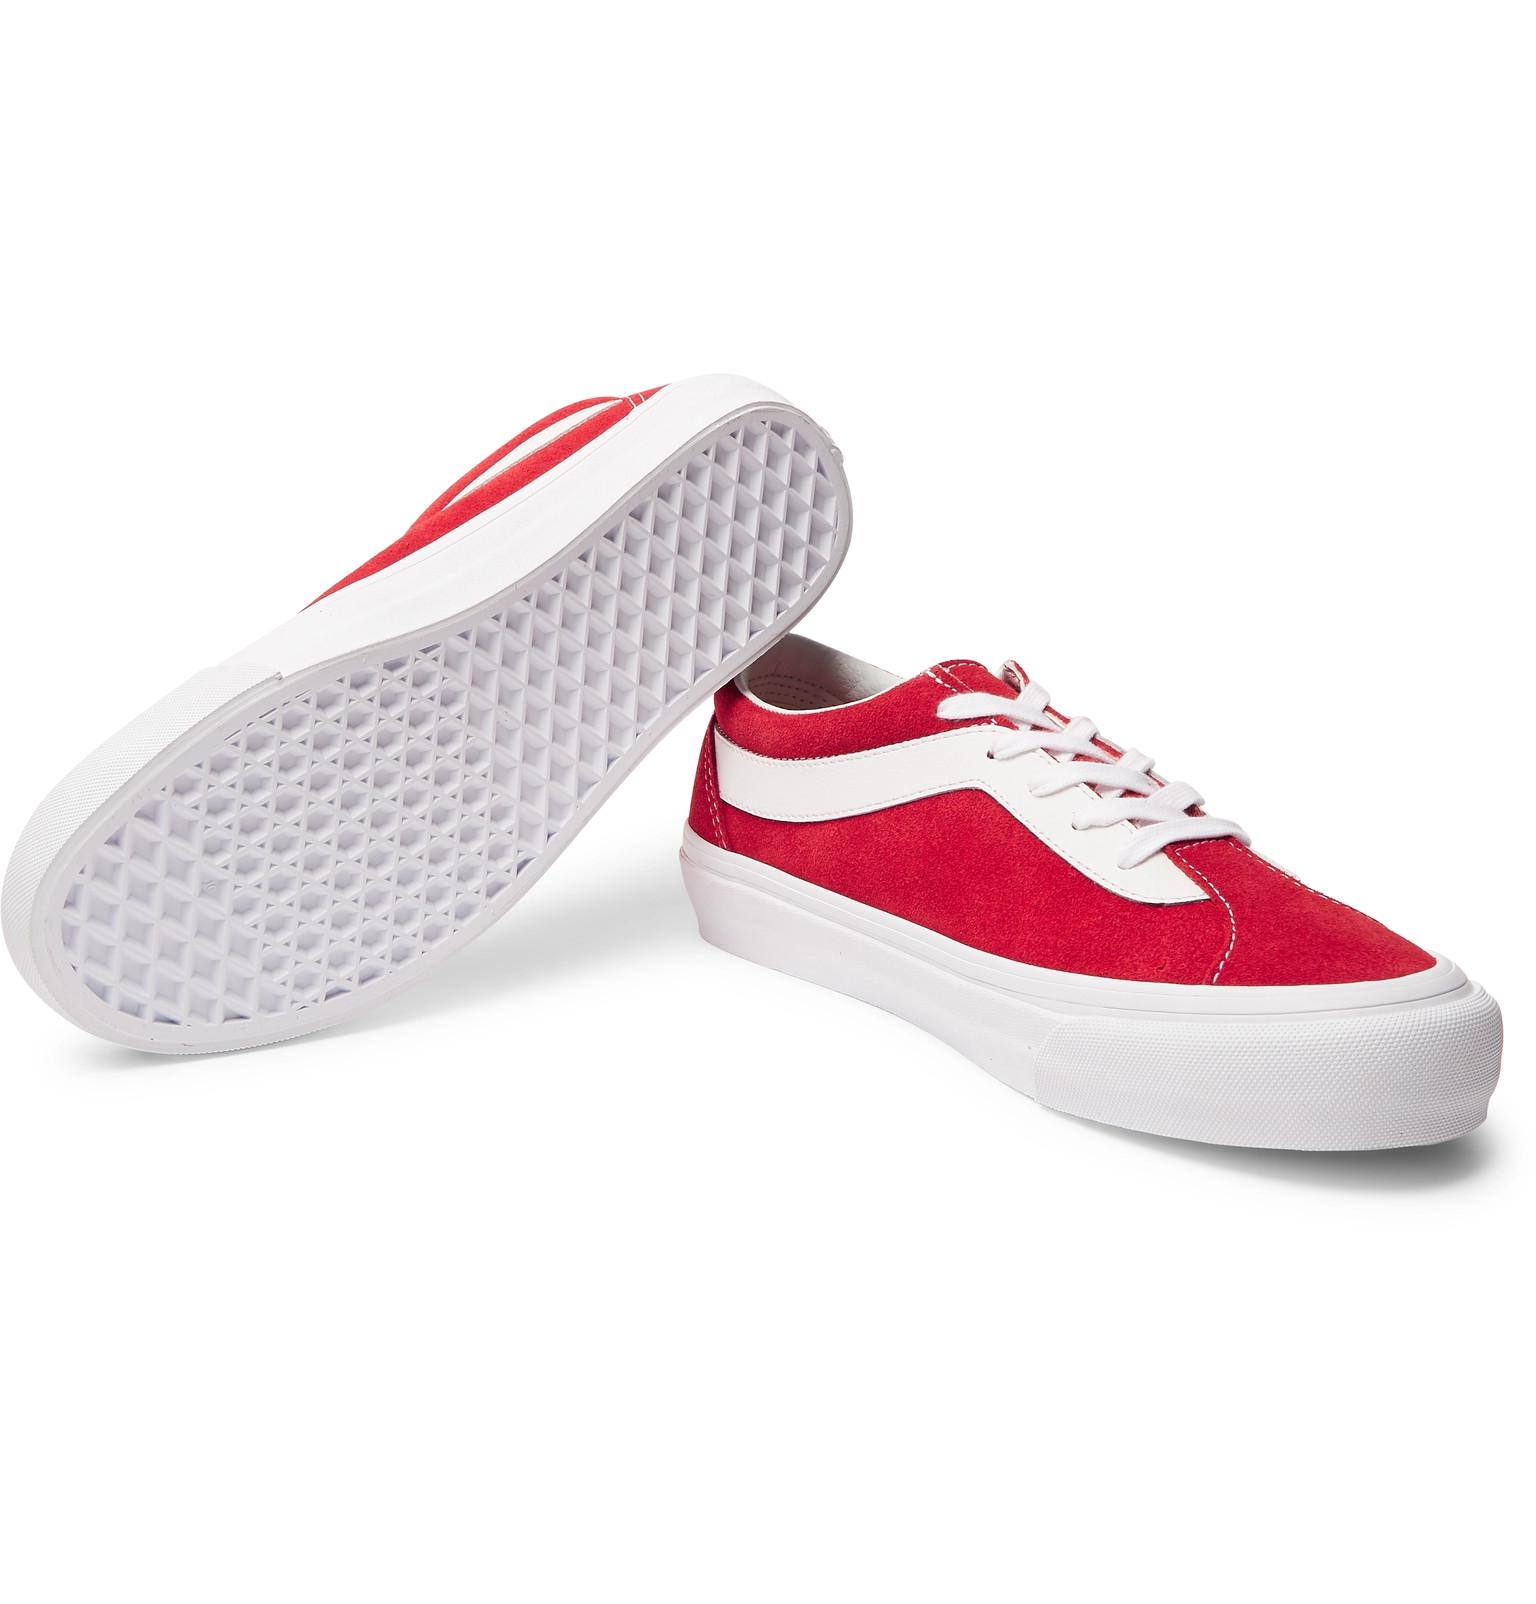 88bcb73d580a0d vans-red-Staple-Bold-Ni-Suede-And-Leather-Sneakers.jpeg